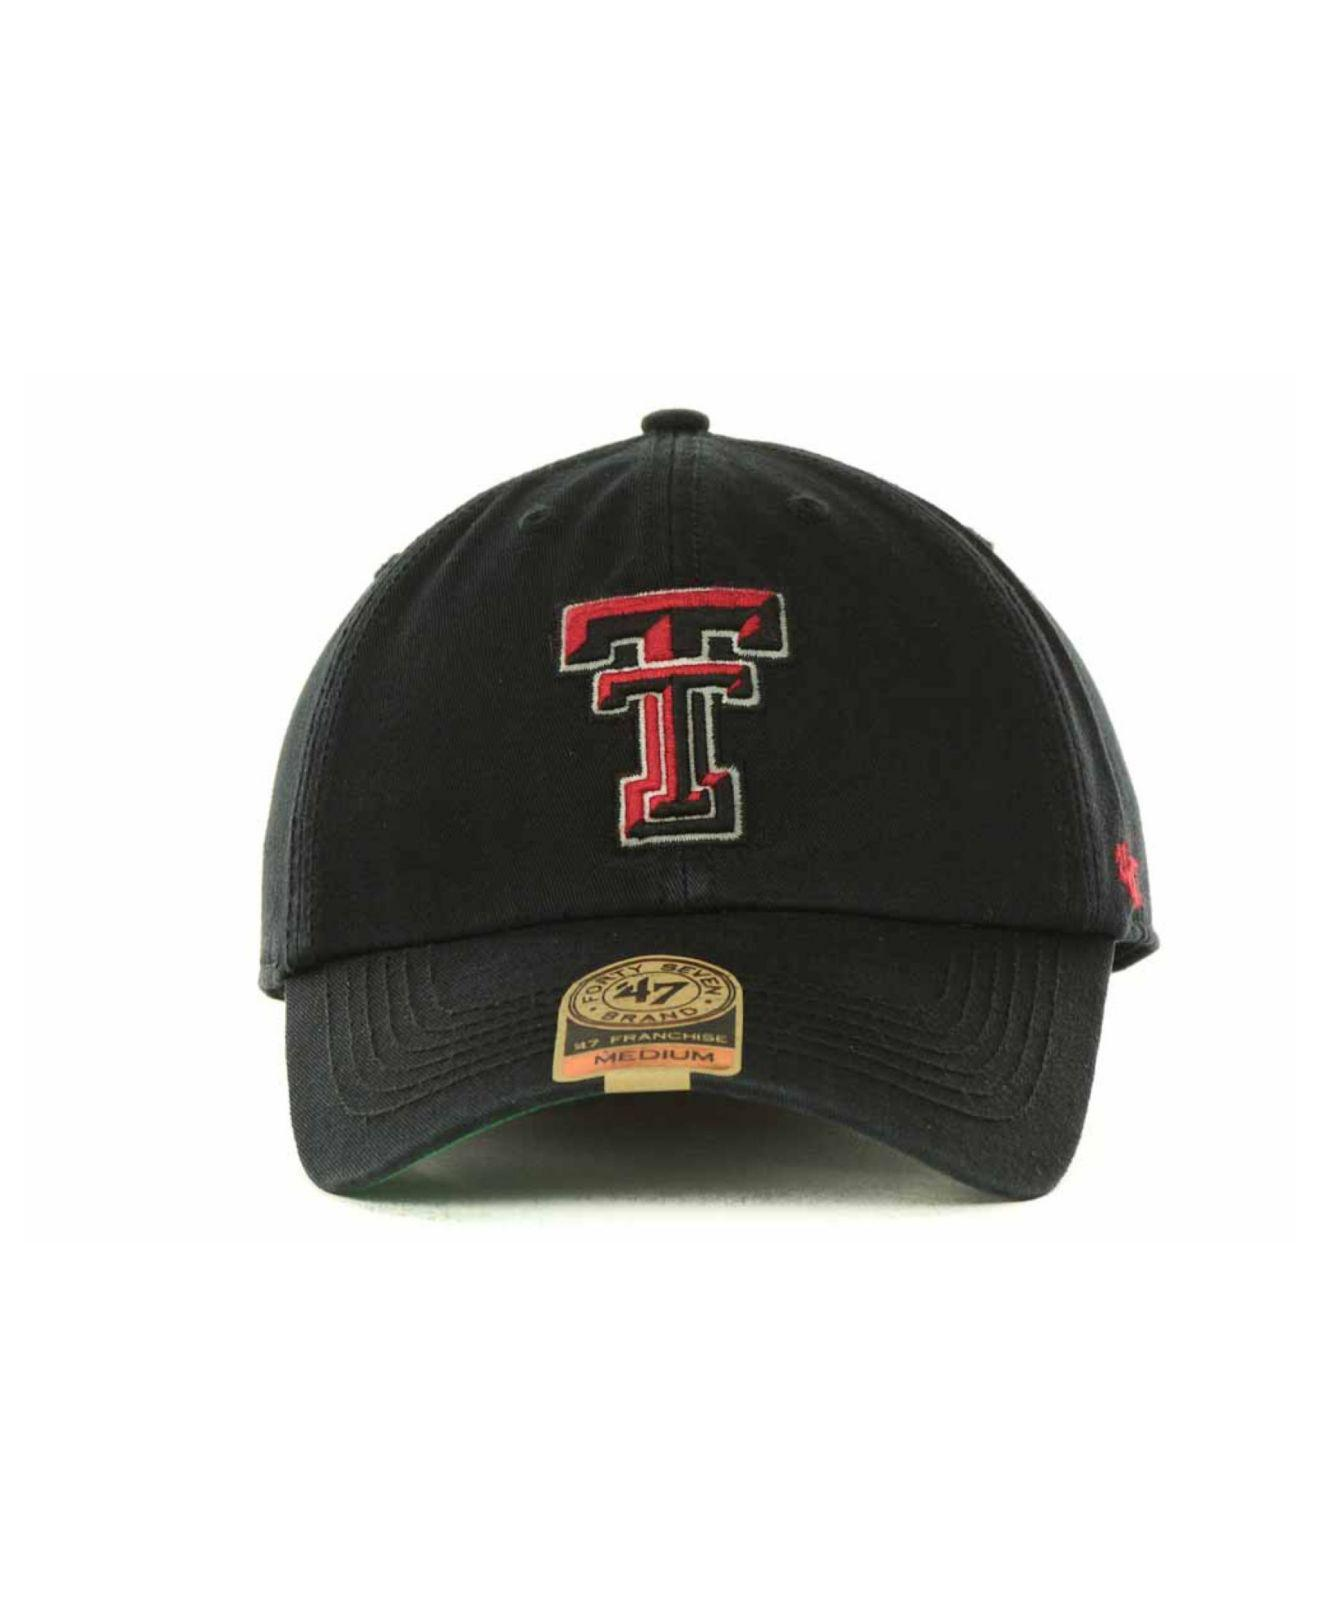 c37604e31db Lyst - 47 Brand Texas Tech Red Raiders Franchise Cap in Black for Men